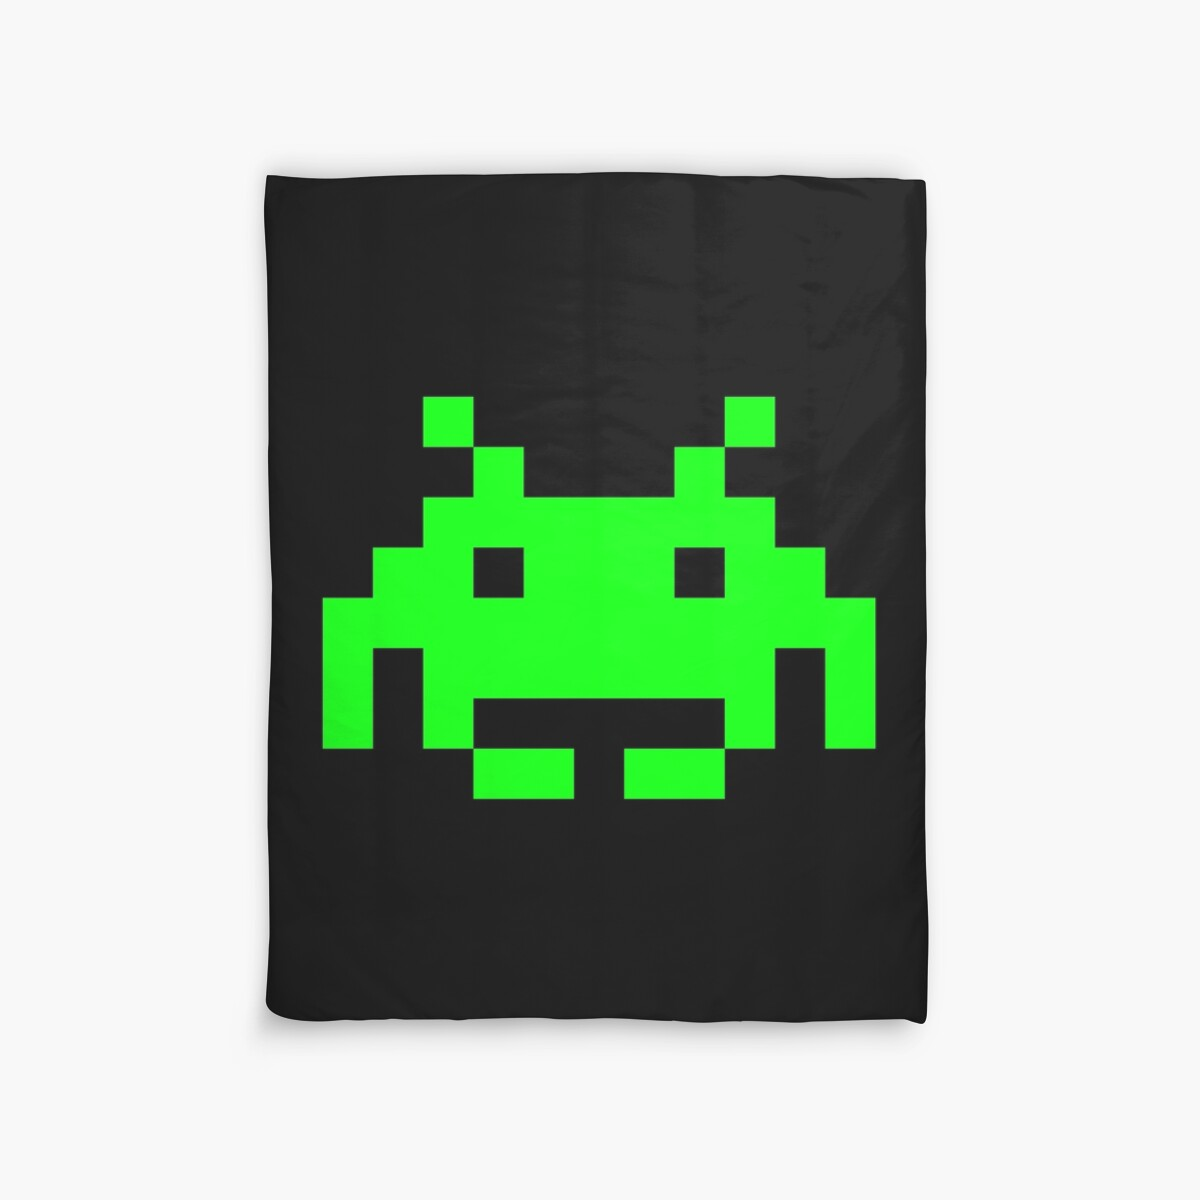 space invaders alien sprite space invaders alien sprite by scammell design